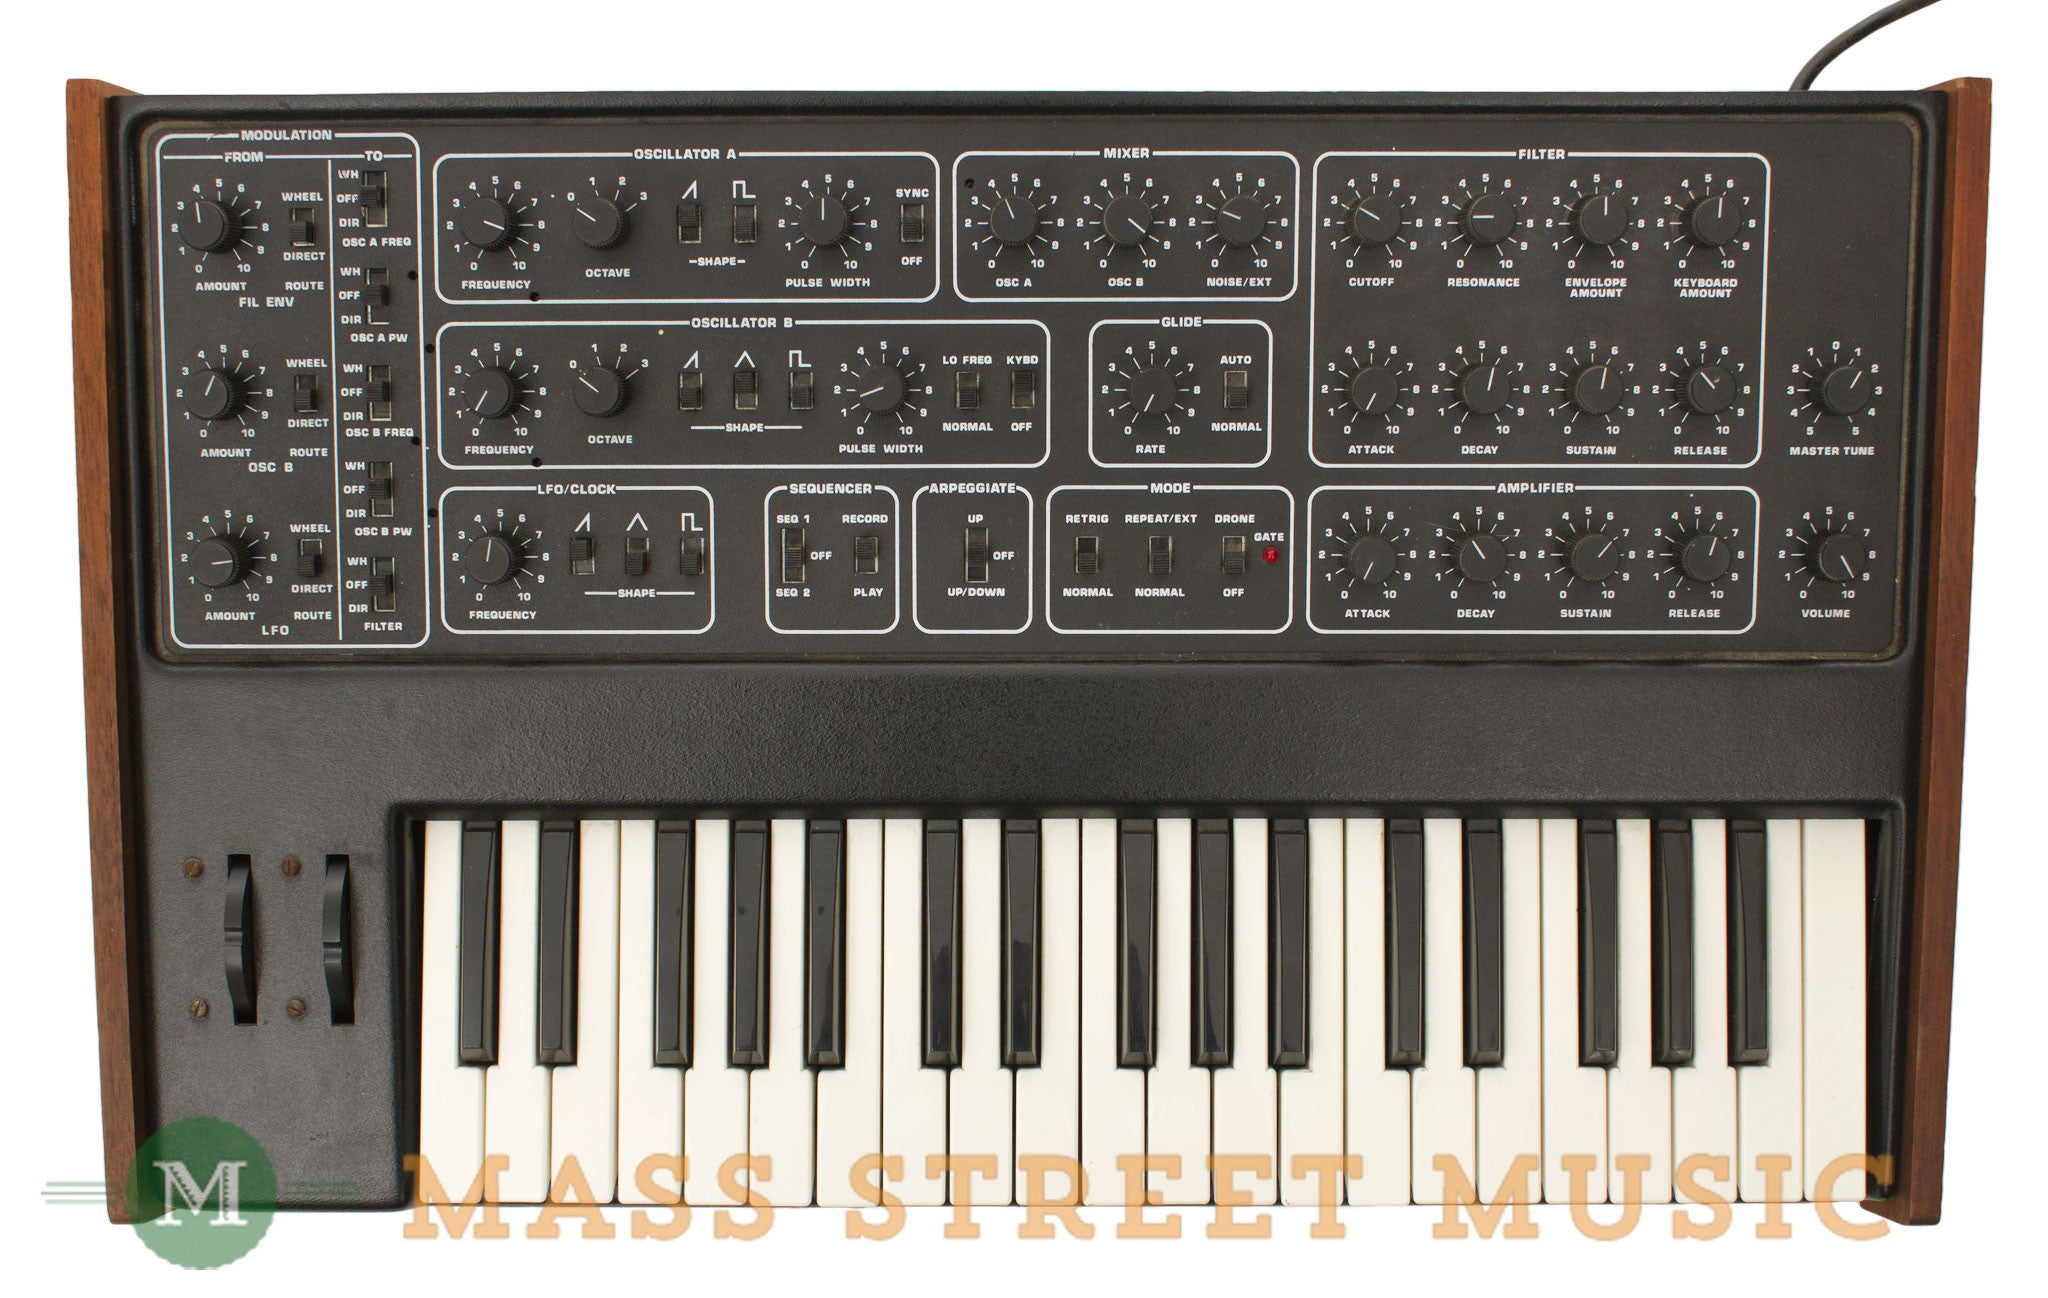 https://cdn.shopify.com/s/files/1/0202/0250/products/SequentialCircuits_ProOne_top.jpg